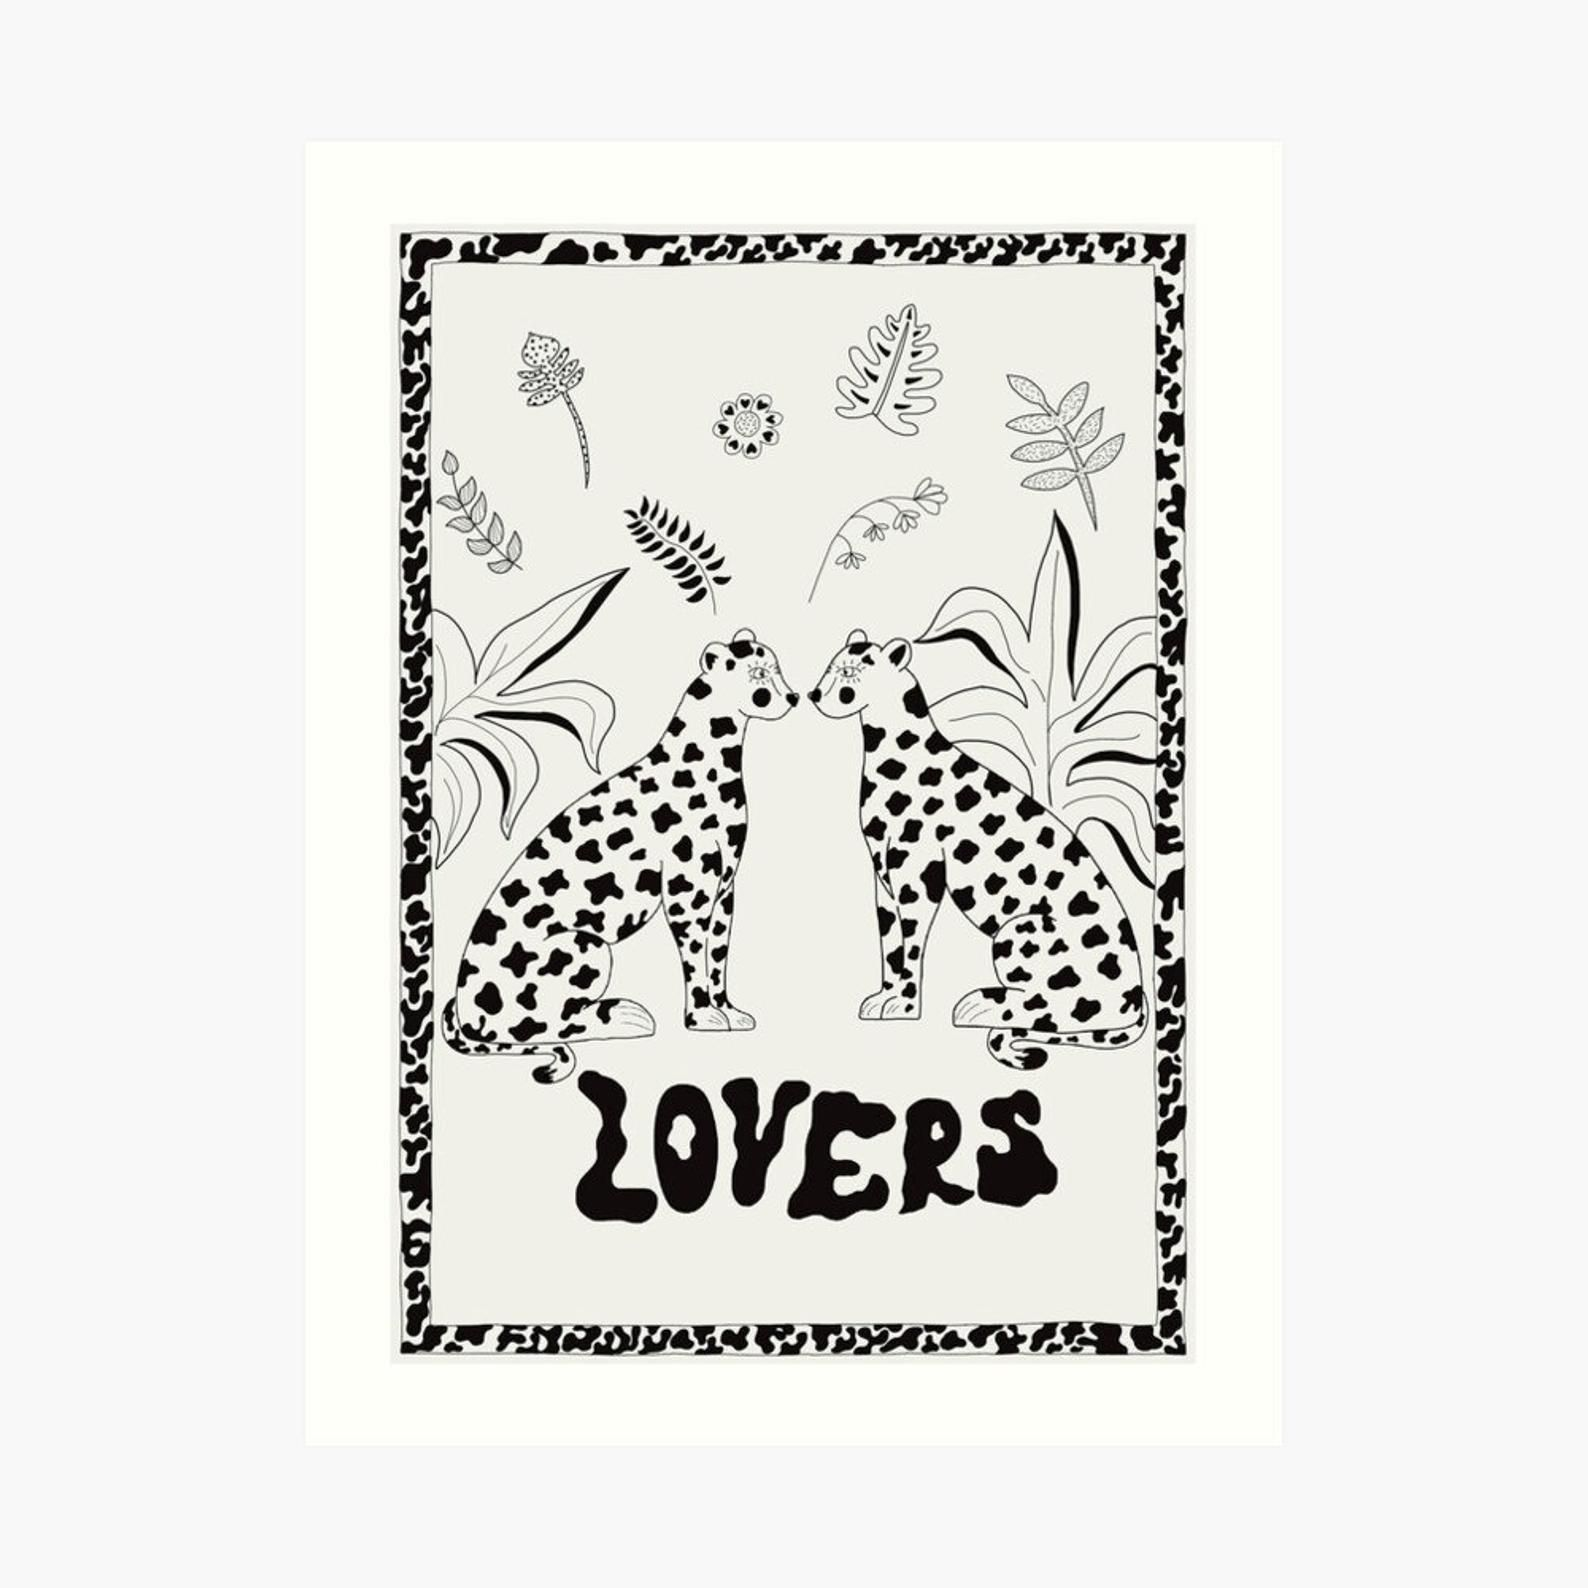 Lovers leopards A4 print